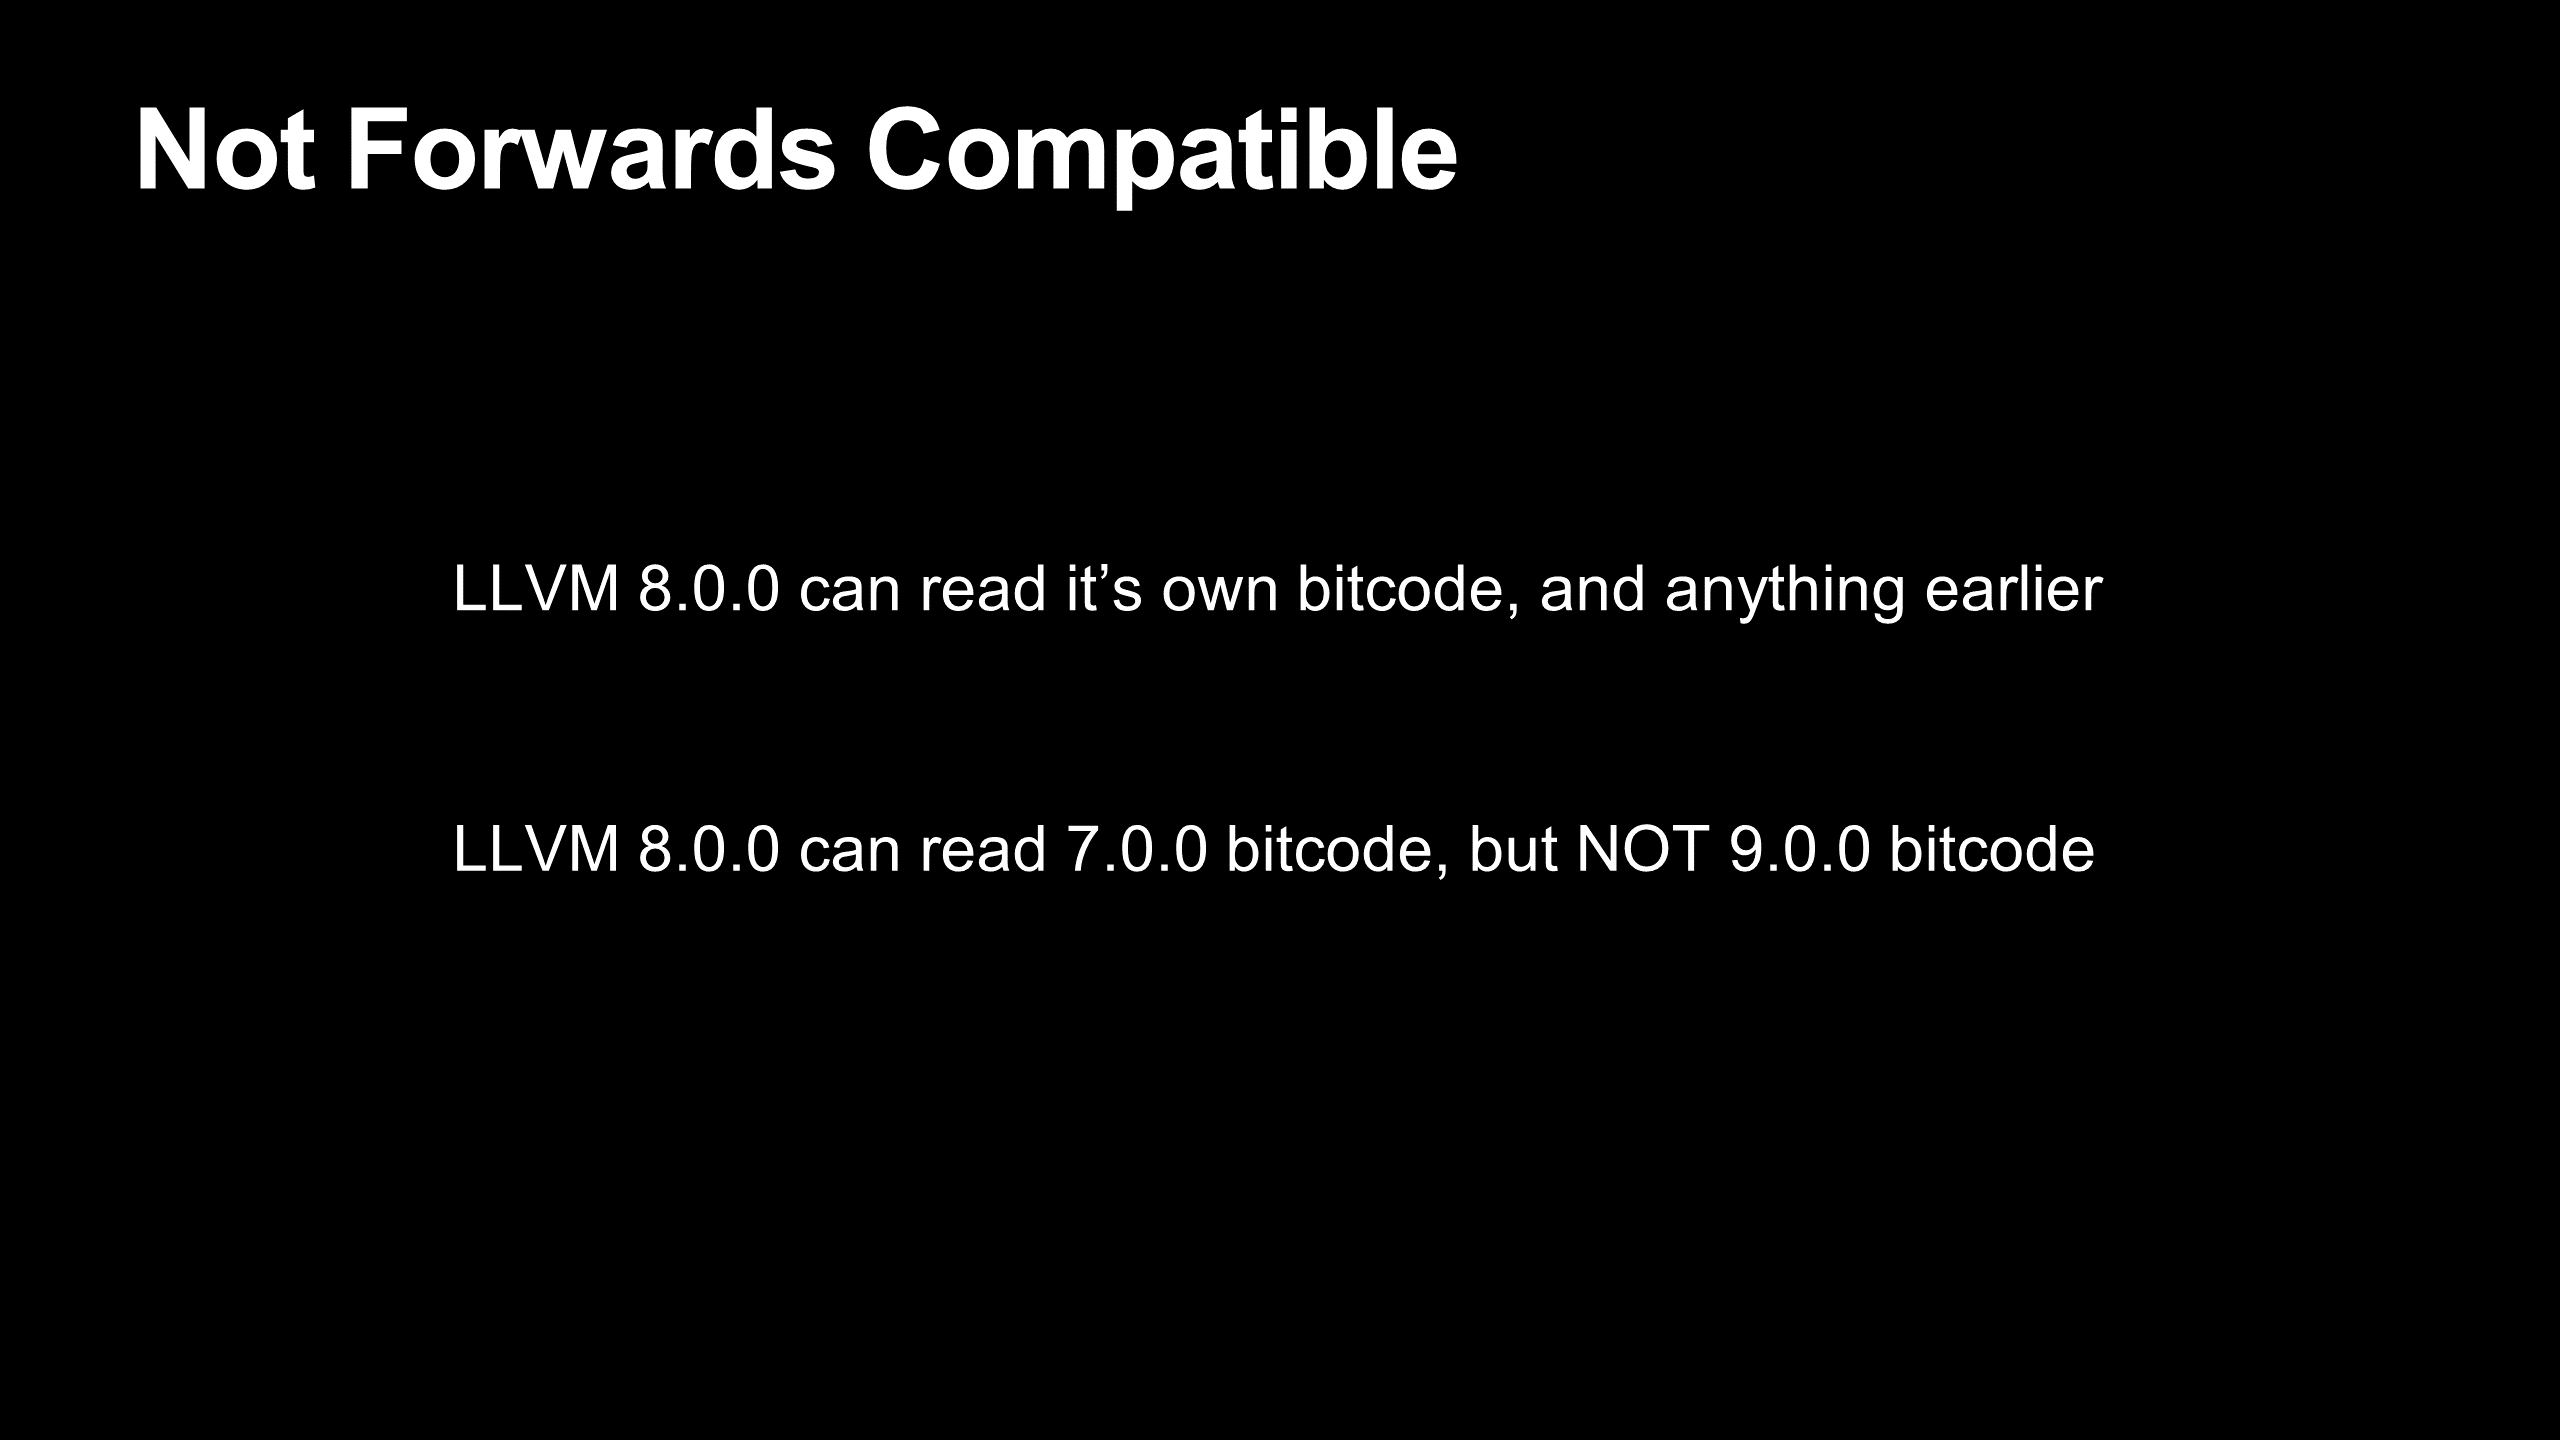 Bitcode is not forwards compatible